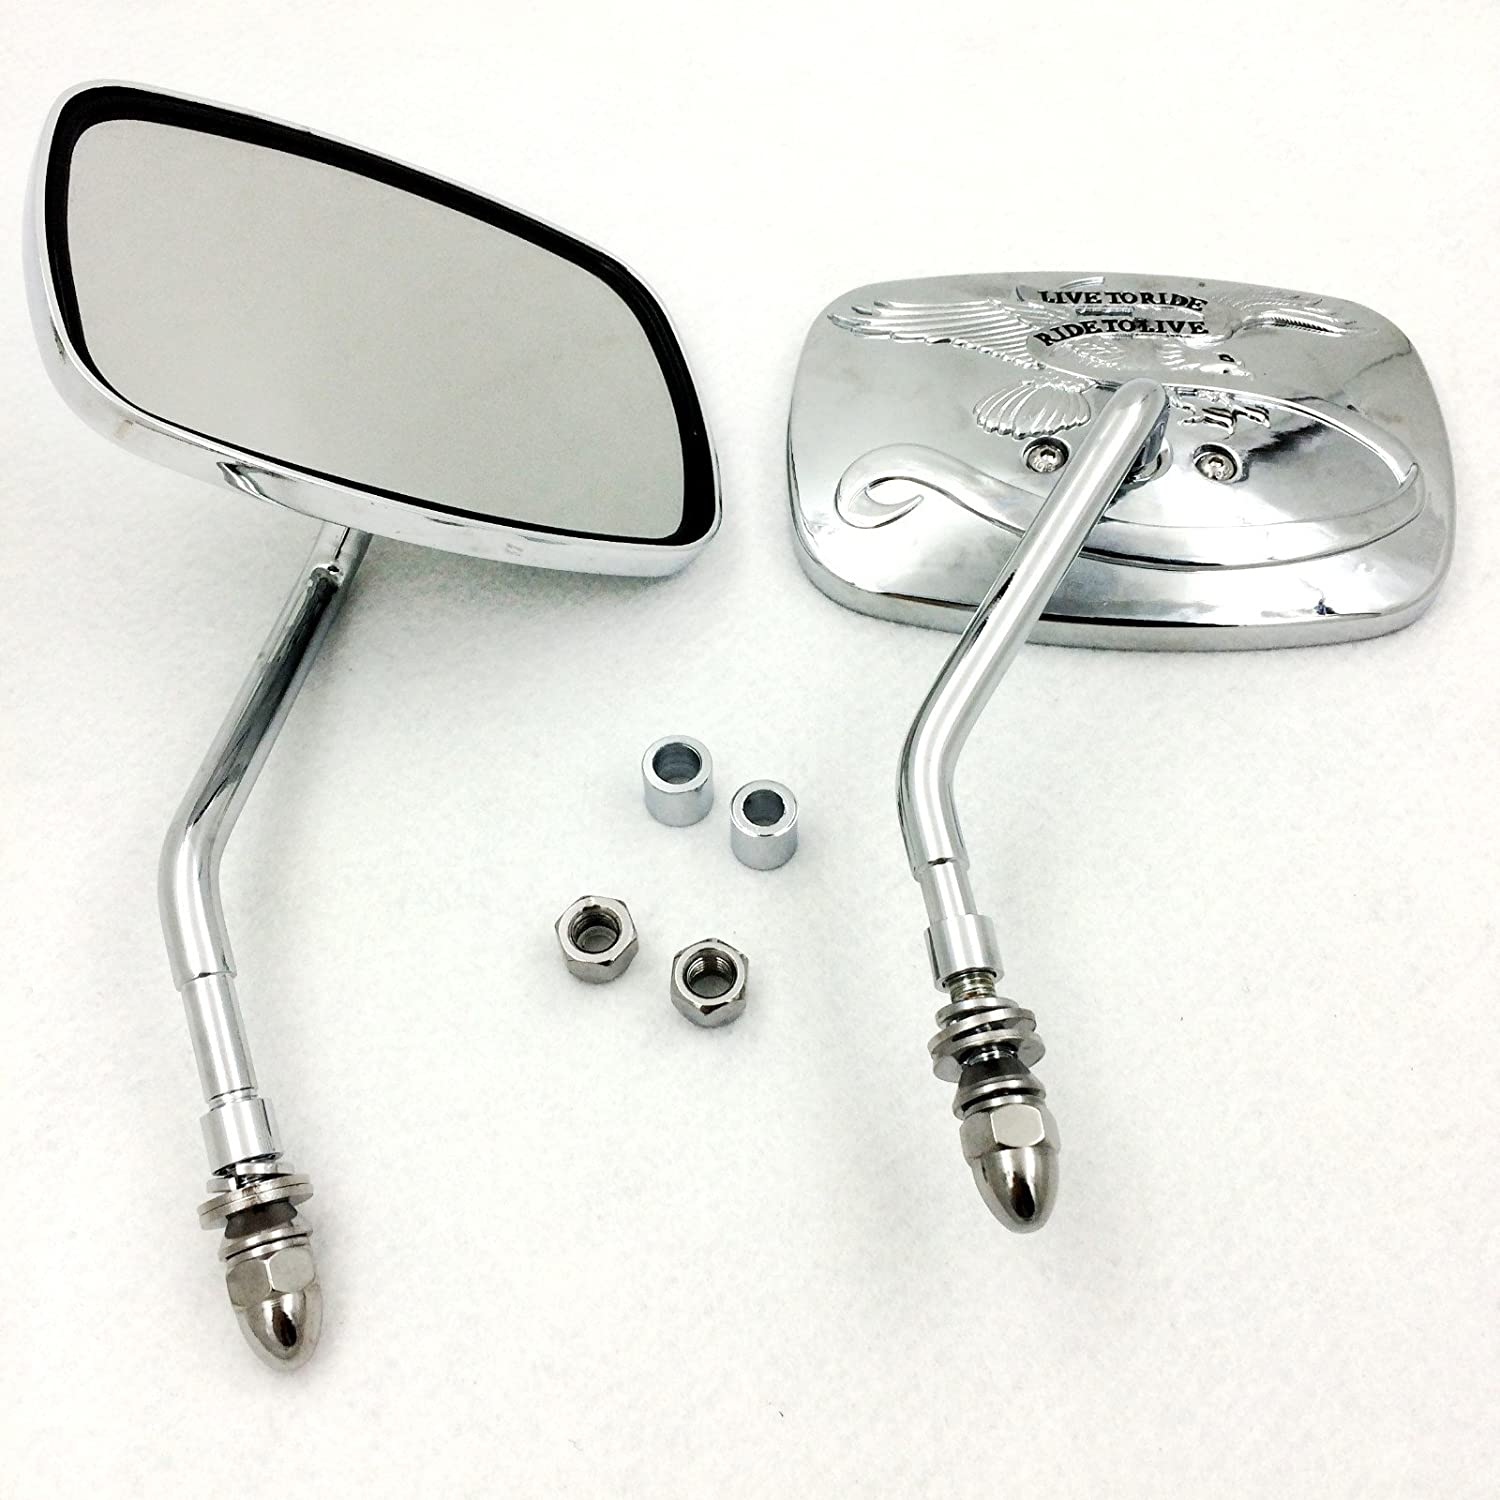 RearView Mirrors For H-D street sports chopper cruiser Eagle Spirit Live to Ride Motorcycle